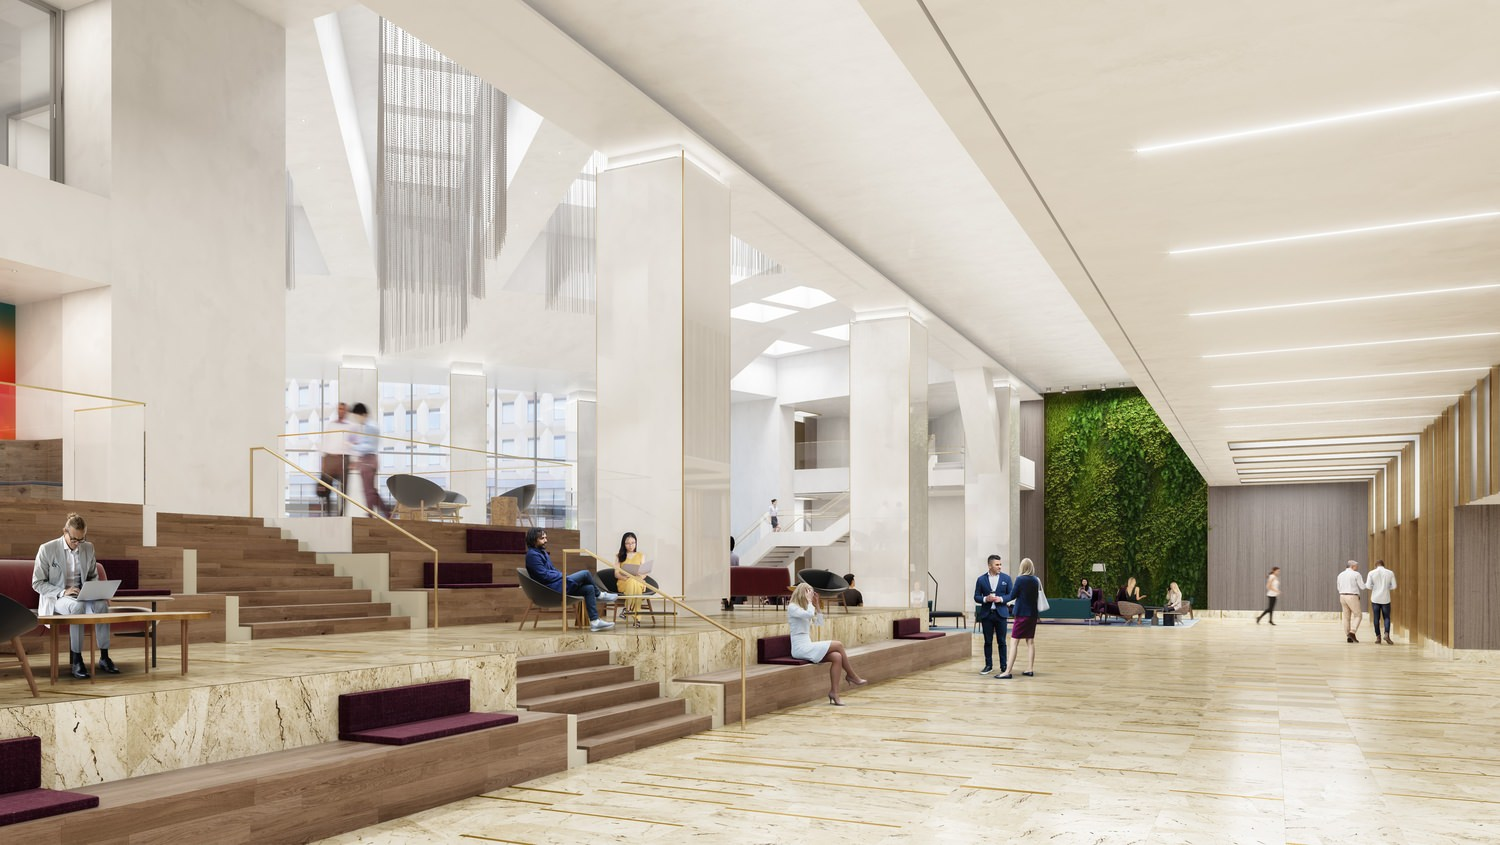 The inside of a large office building that has stairs with seating areas around it and an indoor garden wall.